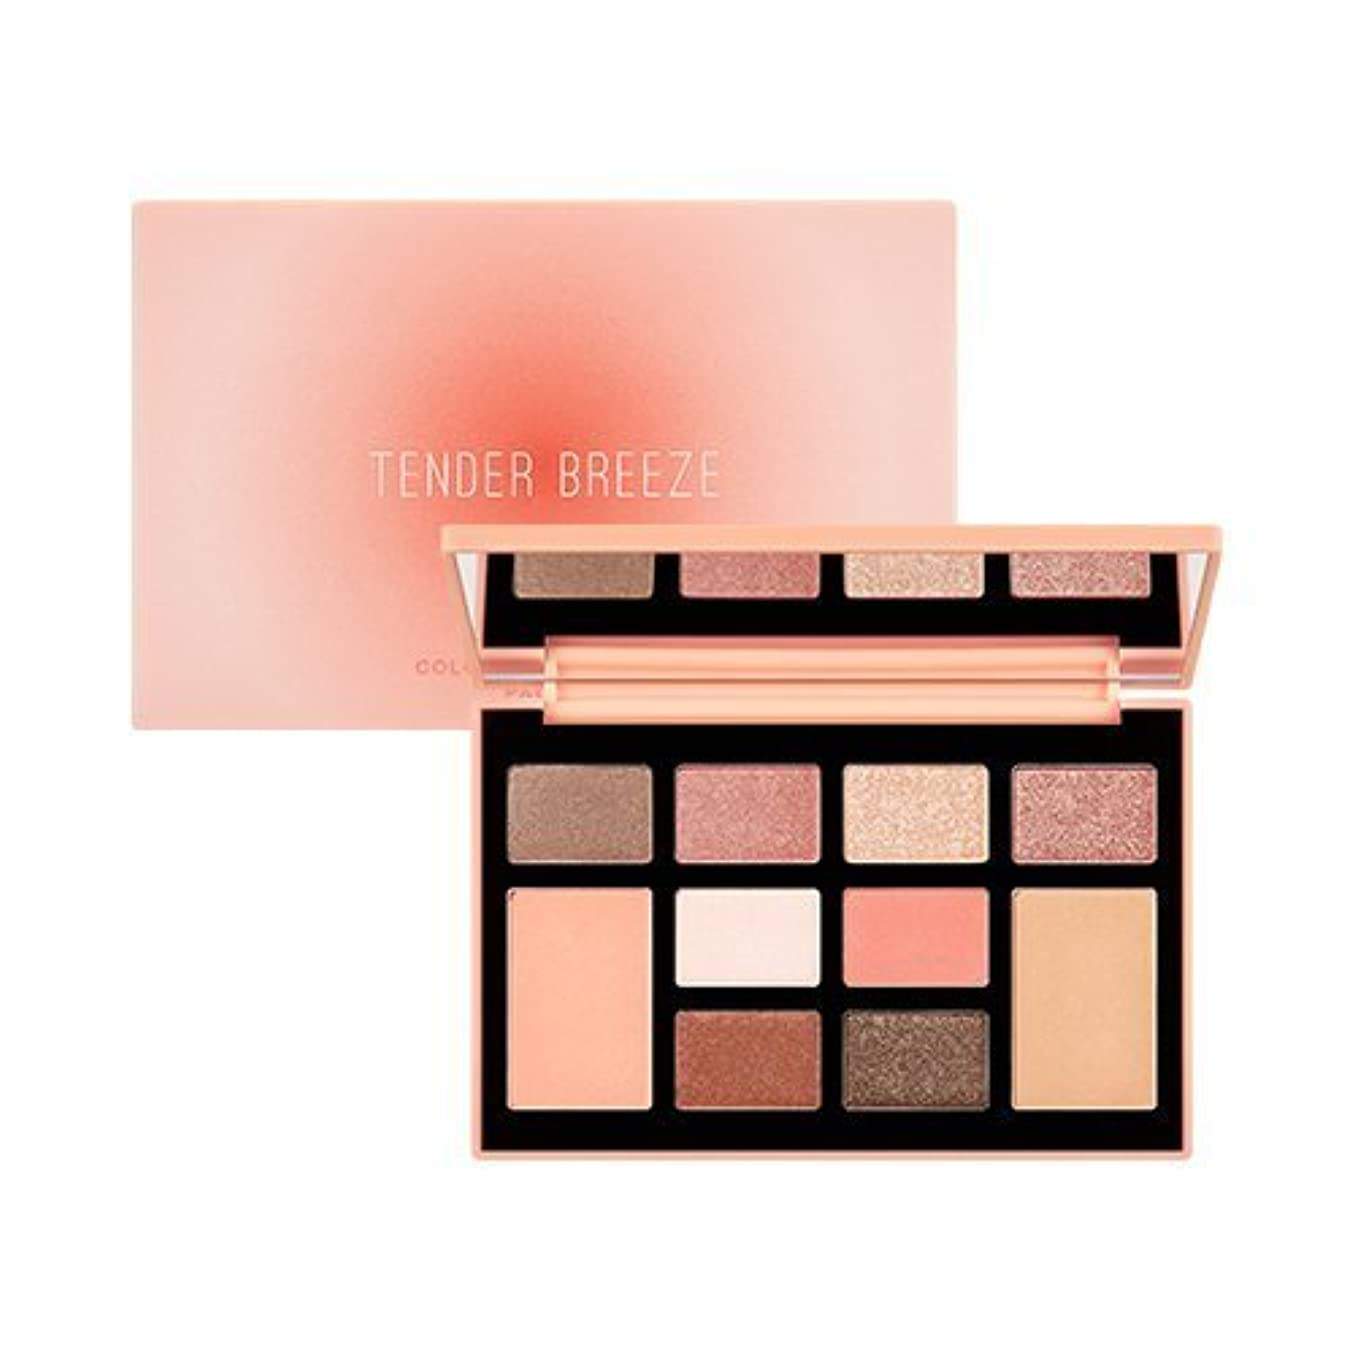 MISSHA Color Filter Shadow Palette [No.4 Tender Breeze Filter] / ミシャ カラーフィルターシャドウパレット [No.4 Tender Breeze Filter...